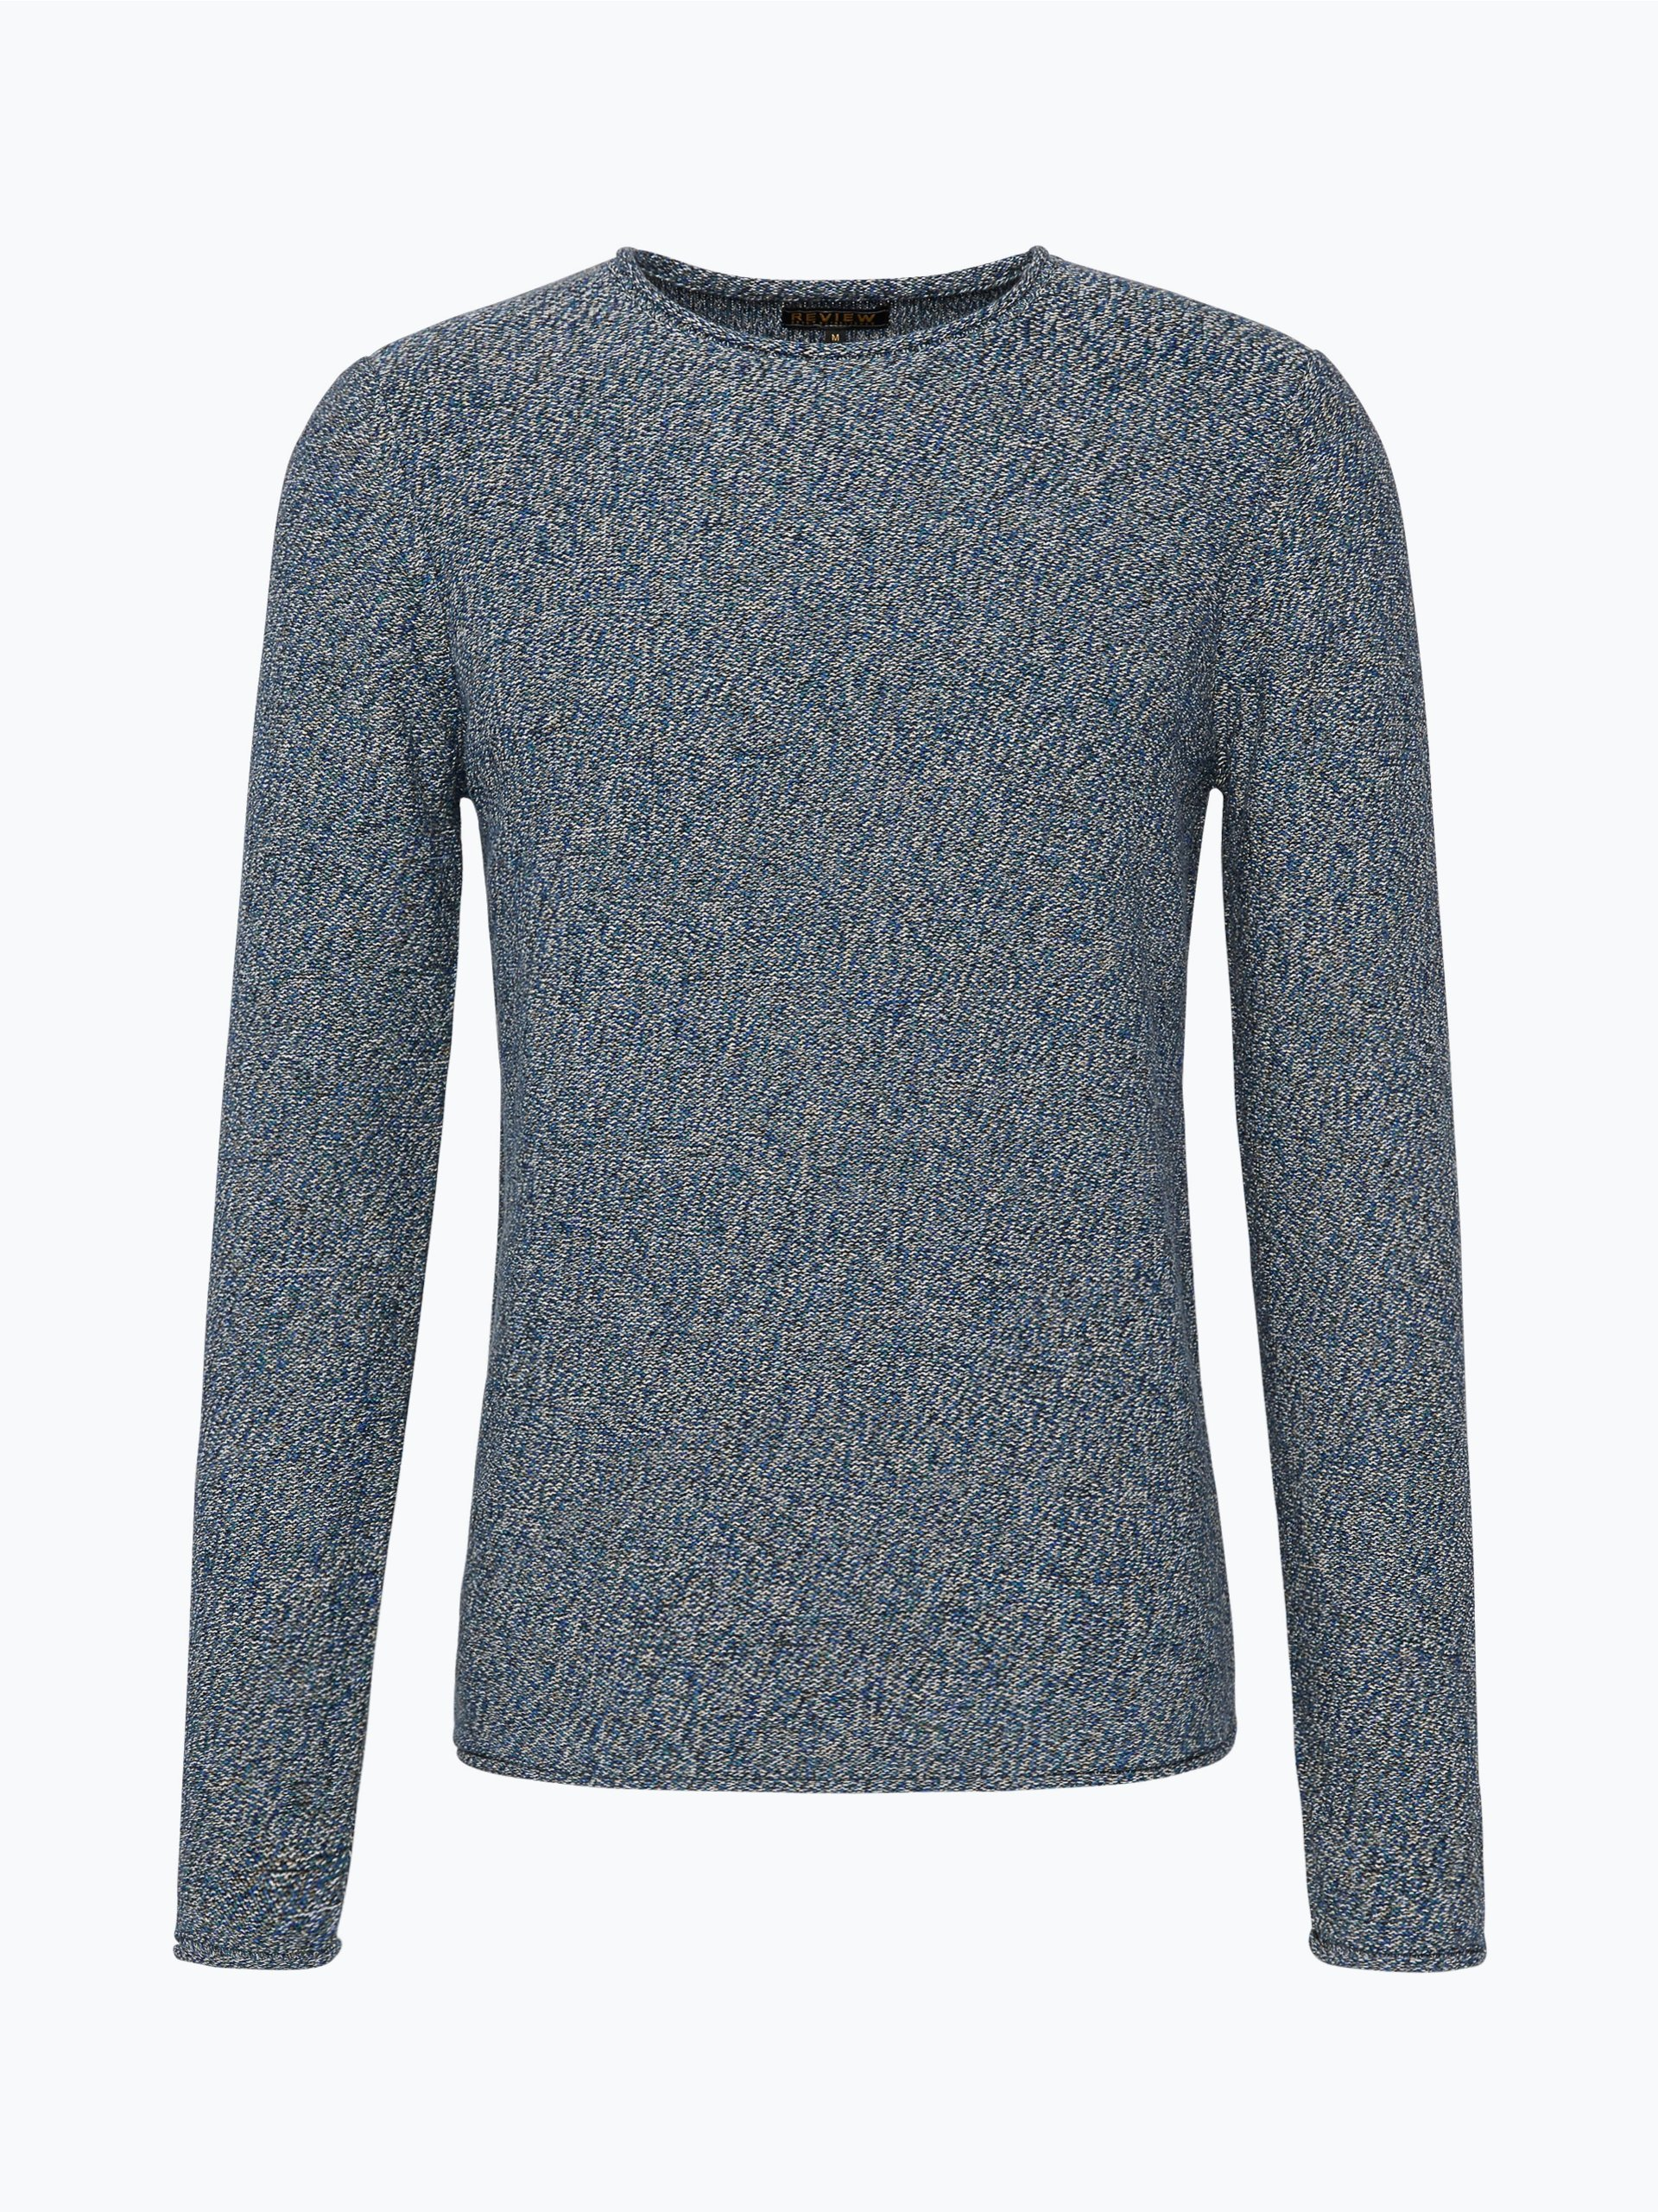 Review Sweter męski